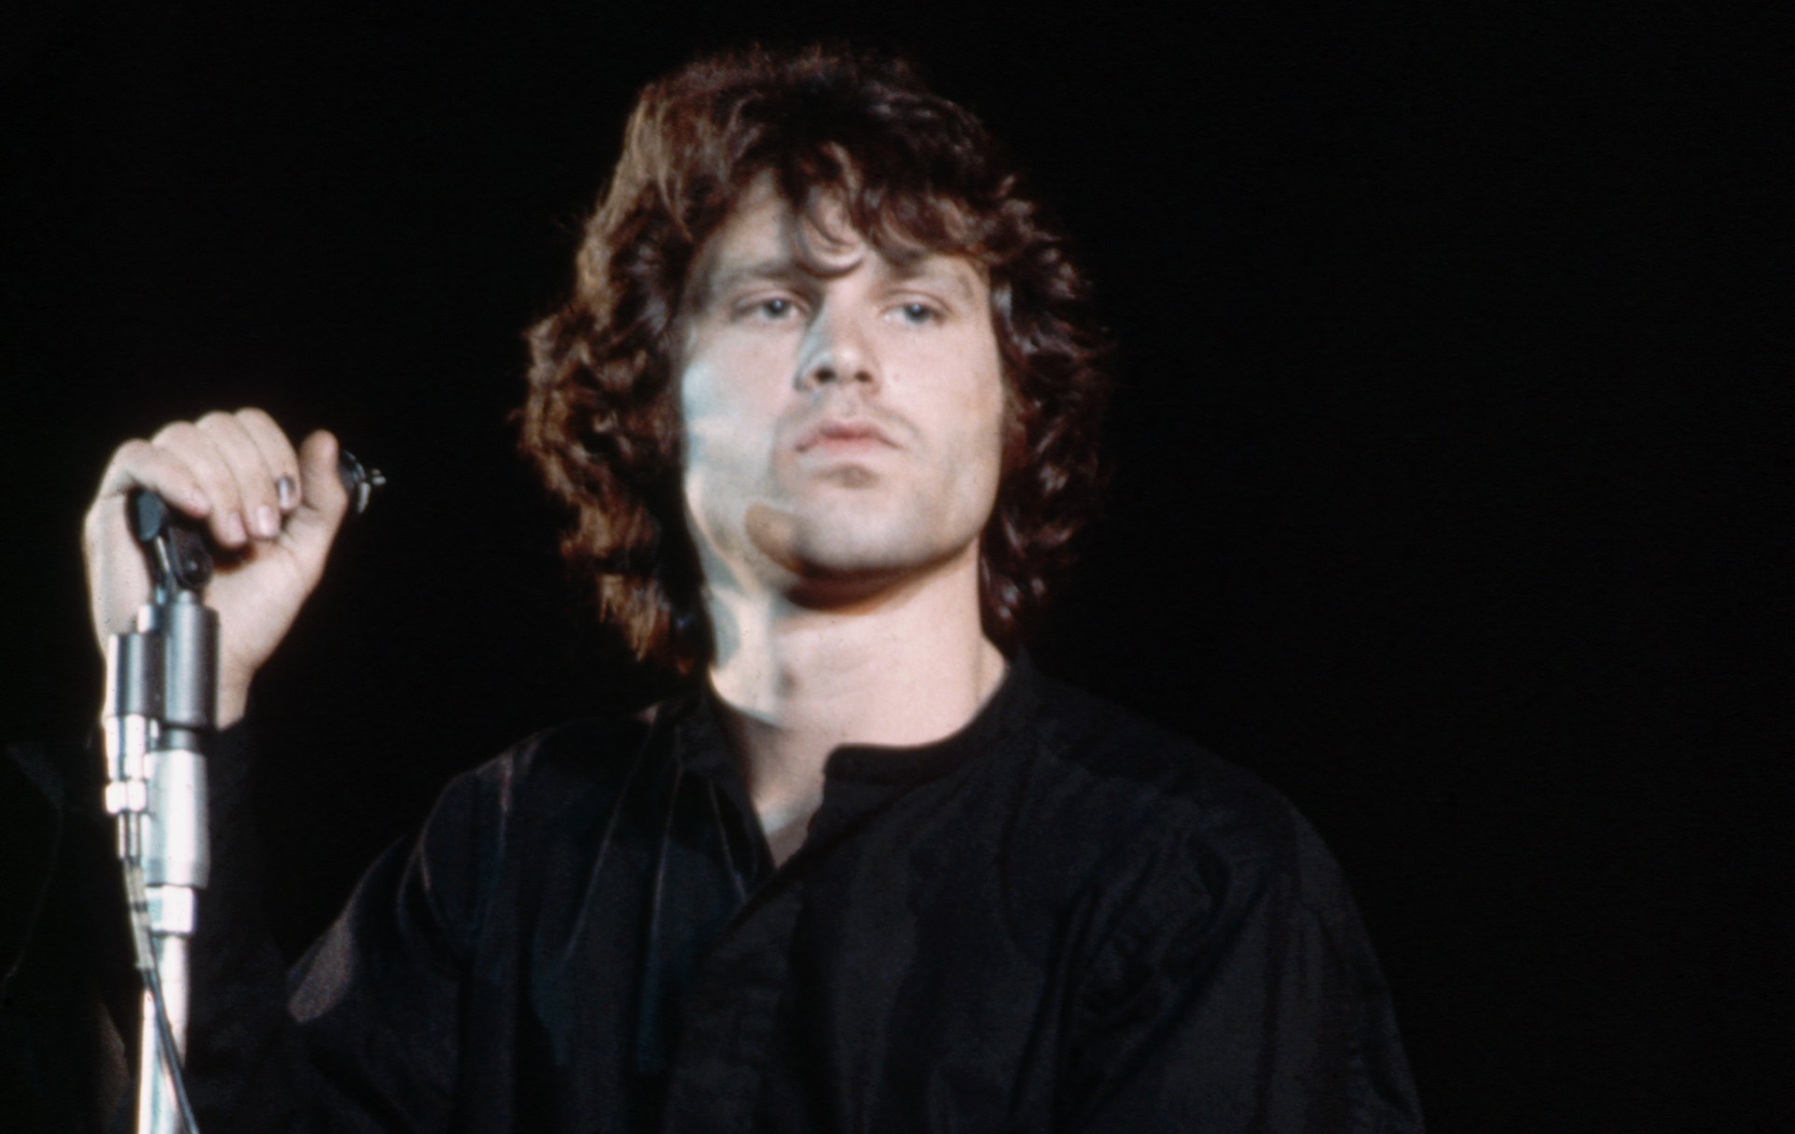 The July 5th 1968 gig by The Doors at the Hollywood Bowl was one of their best performances and provided one of their best live recordings.